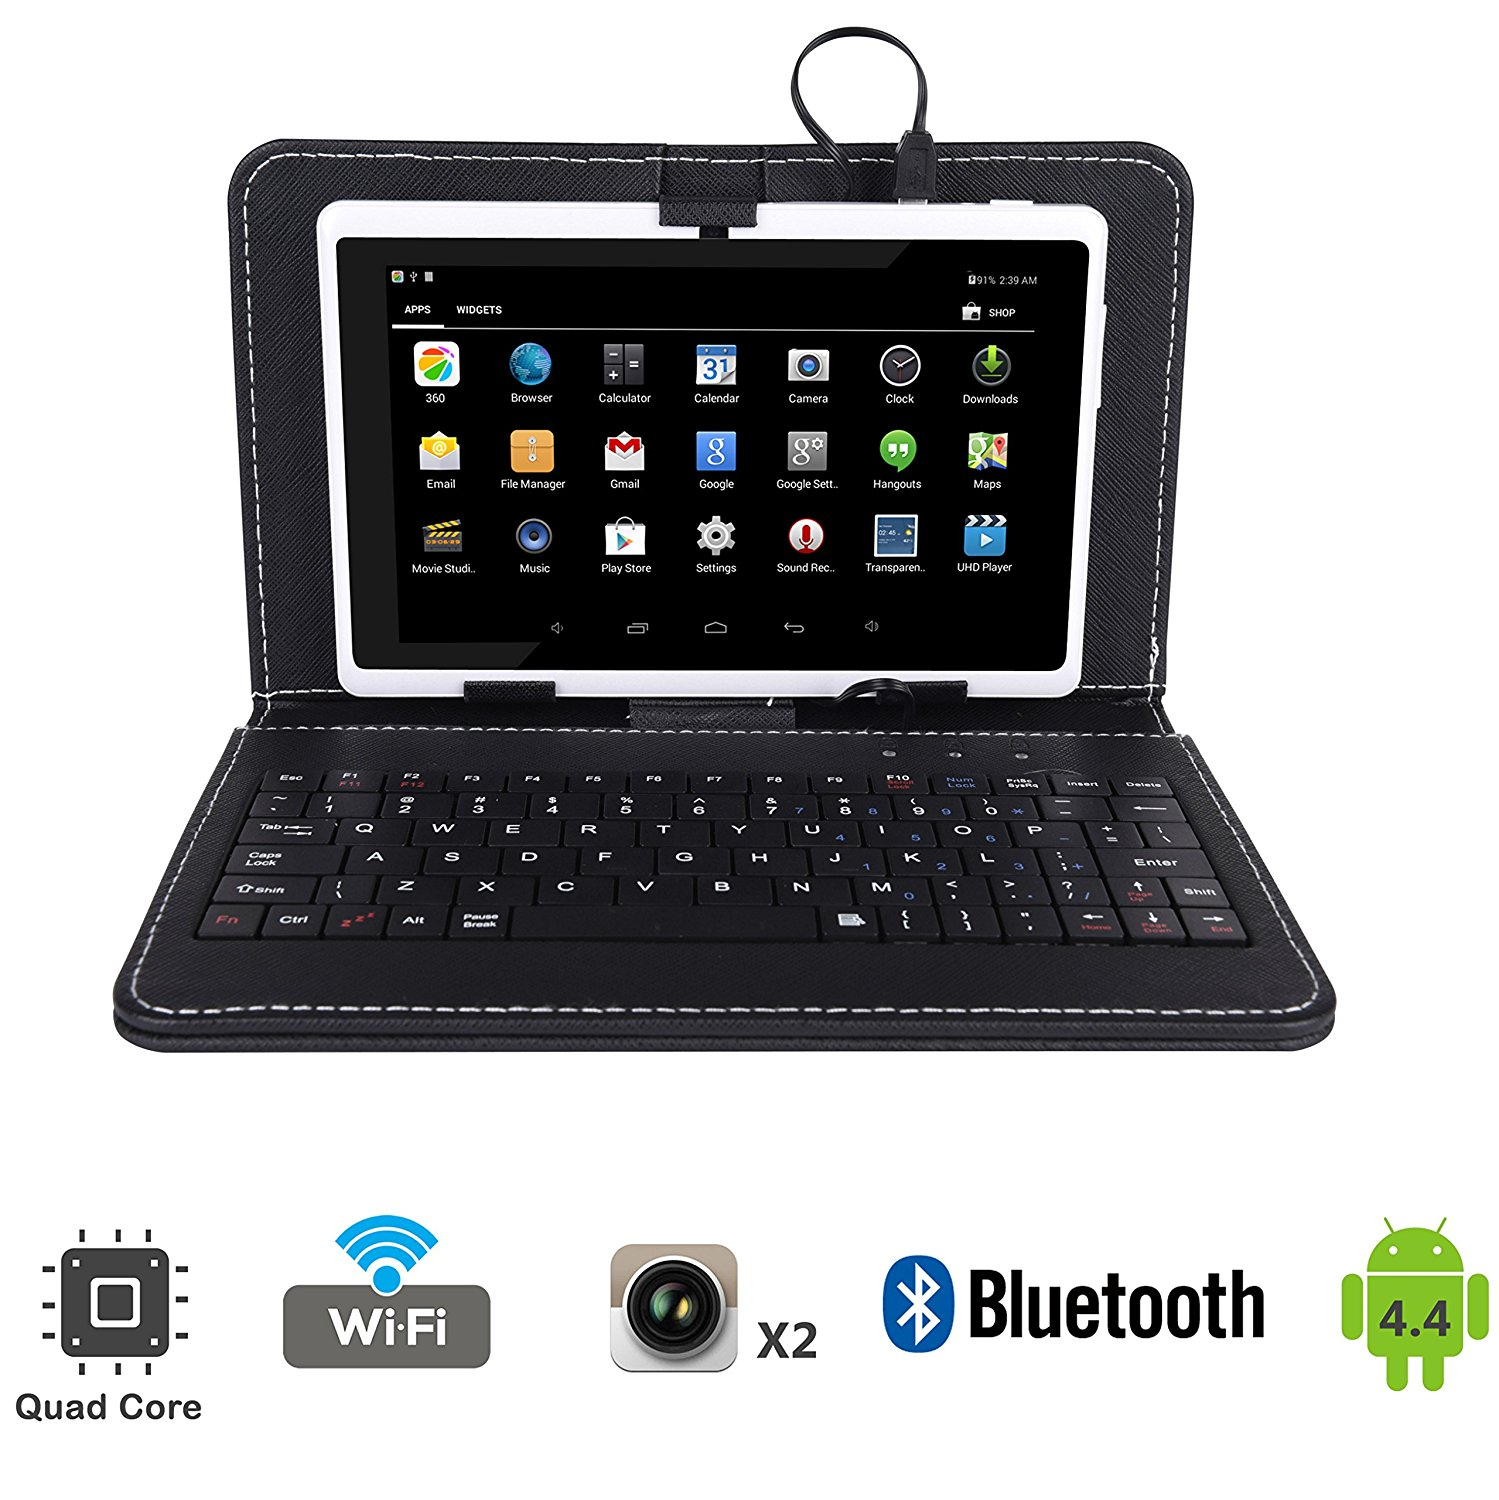 "Tagital 7"" Quad Core Android 4.4 Tablet PC, Dual Camera, Play Store Pre-installed, Bundled with Keyboard"